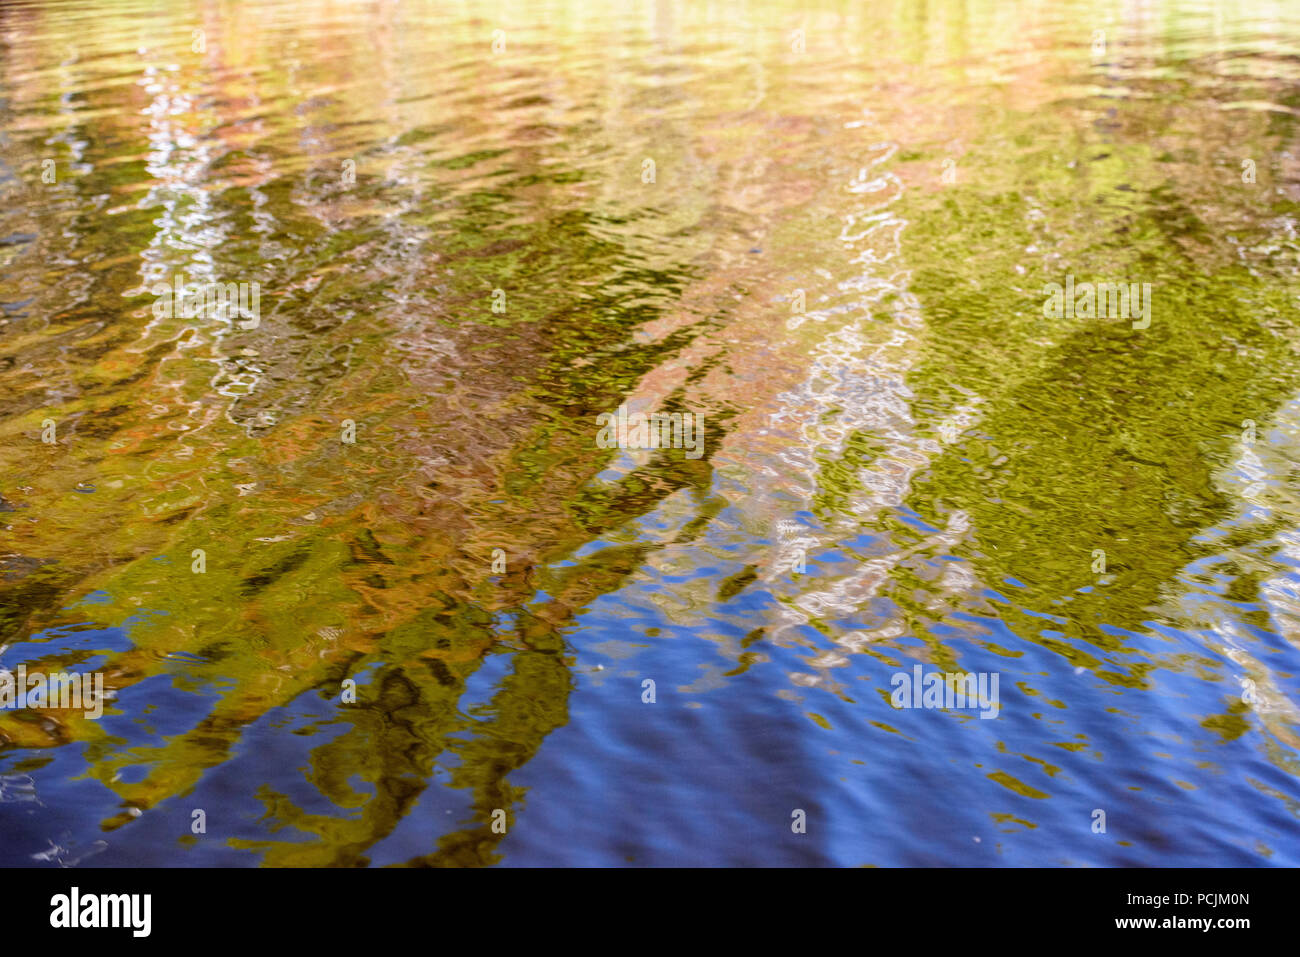 Spring reflections in Elbow Lake, Wanup, Ontario, Canada - Stock Image